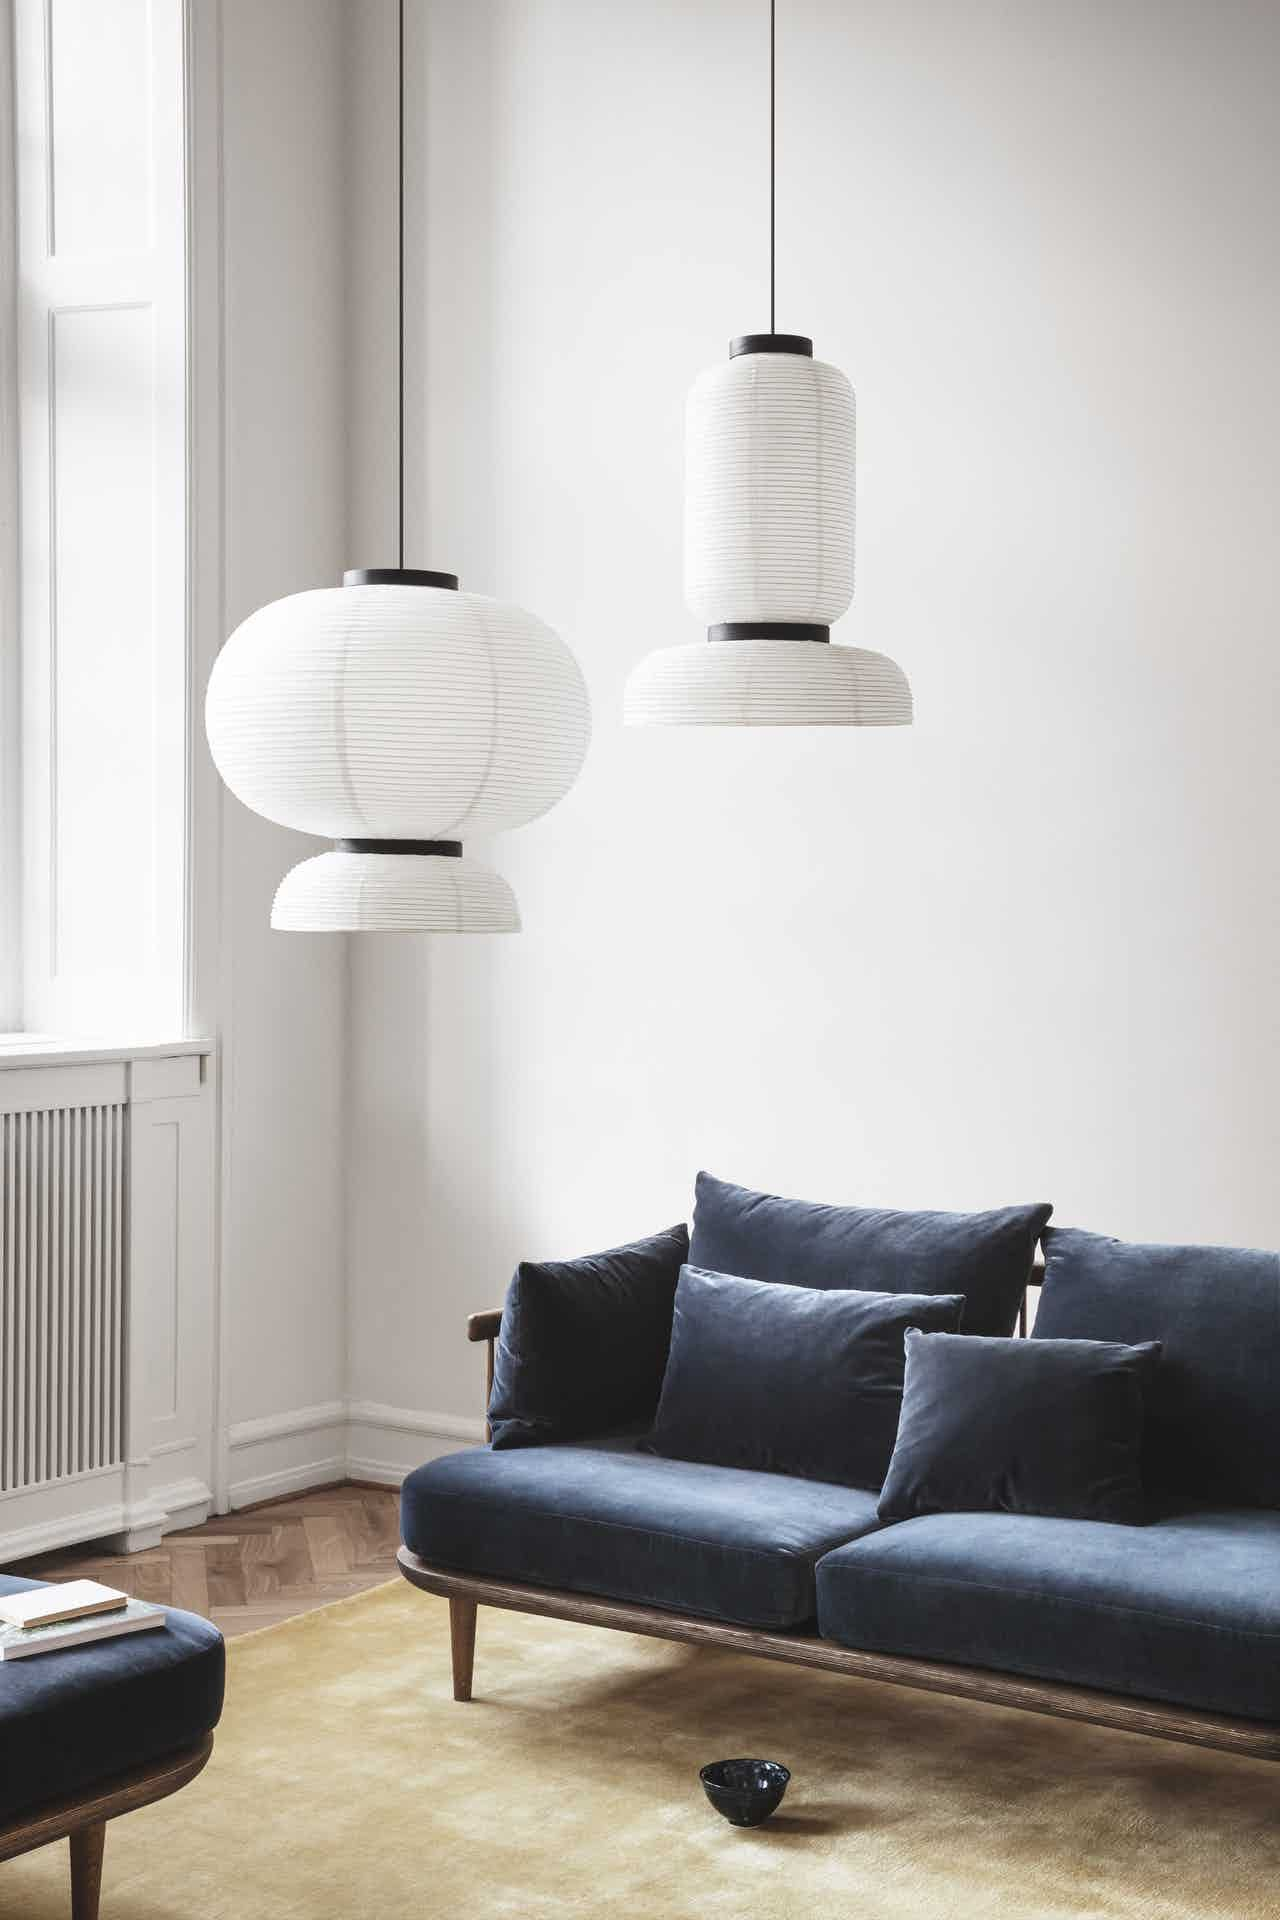 Formakami Pendant Jh3 Jh4 Jh5 By Tradition Contemporary Lighting Design Interior Pendant Lamp Design